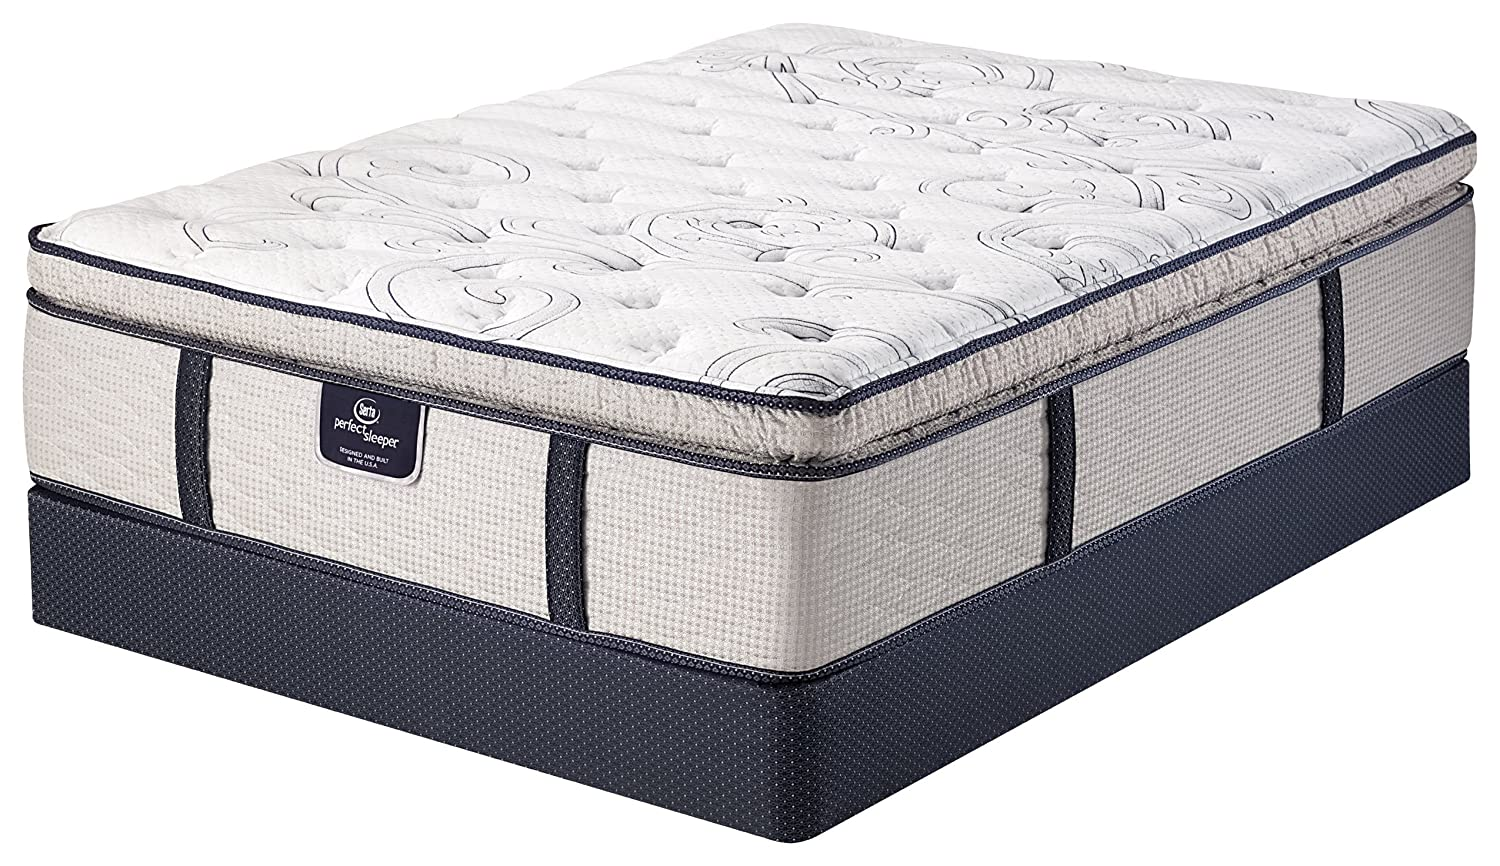 inch for sleepers home side sleeper matress mattress signature reviewed contour sleep best